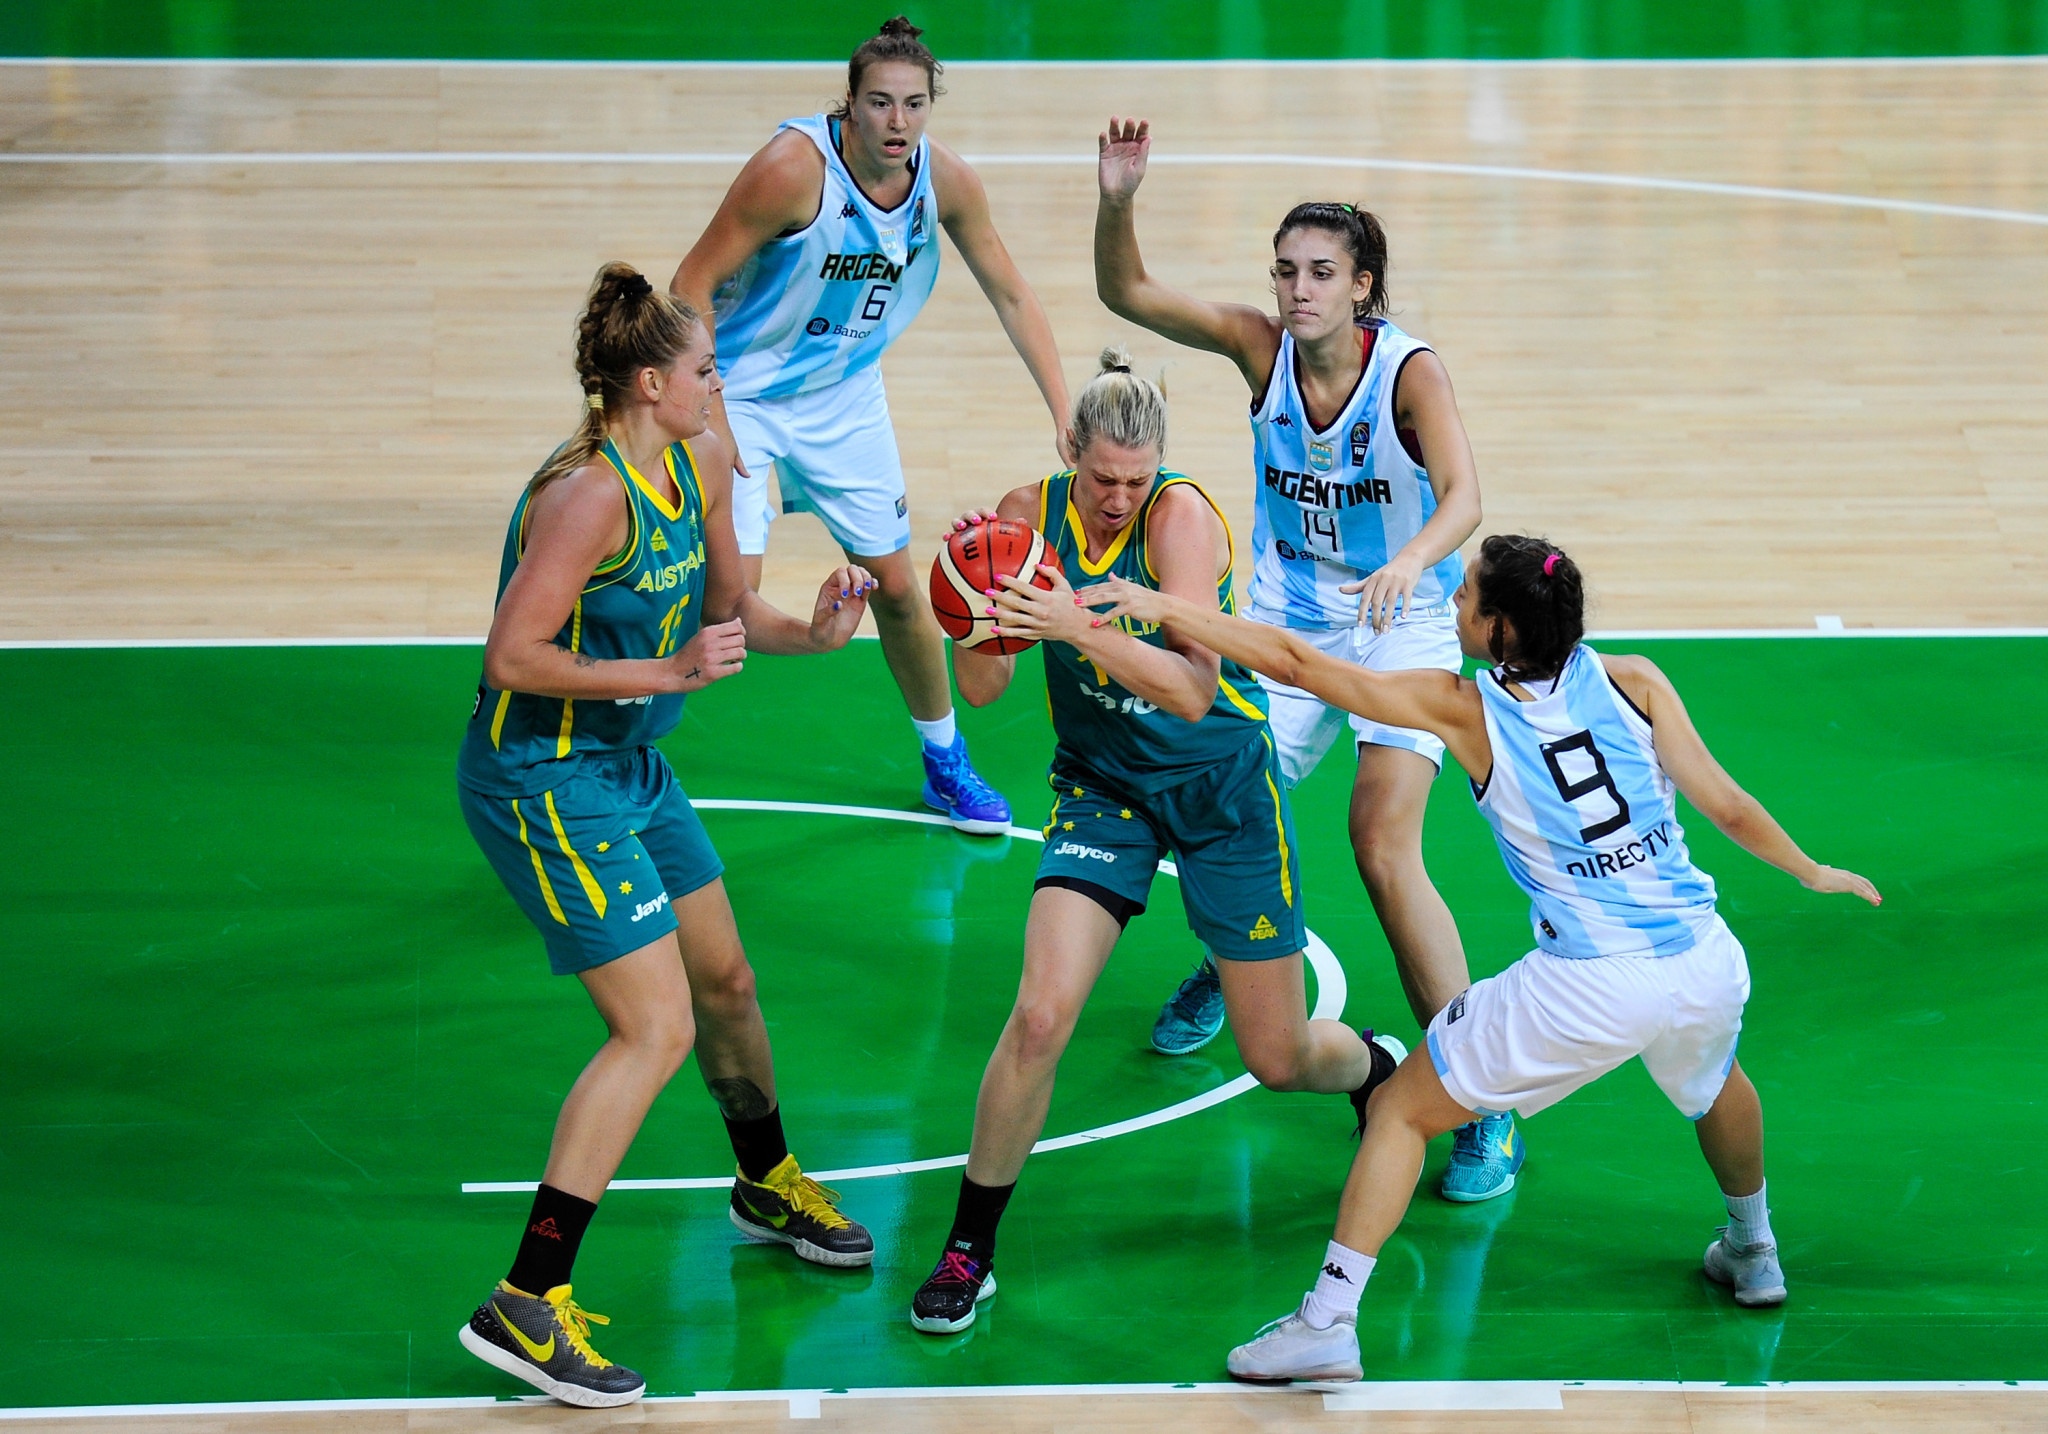 Sara Blicavs is expected to bring versatility to Australia's women's basketball squad as they go in search of their first Olympic medal since London 2012 ©Getty Images